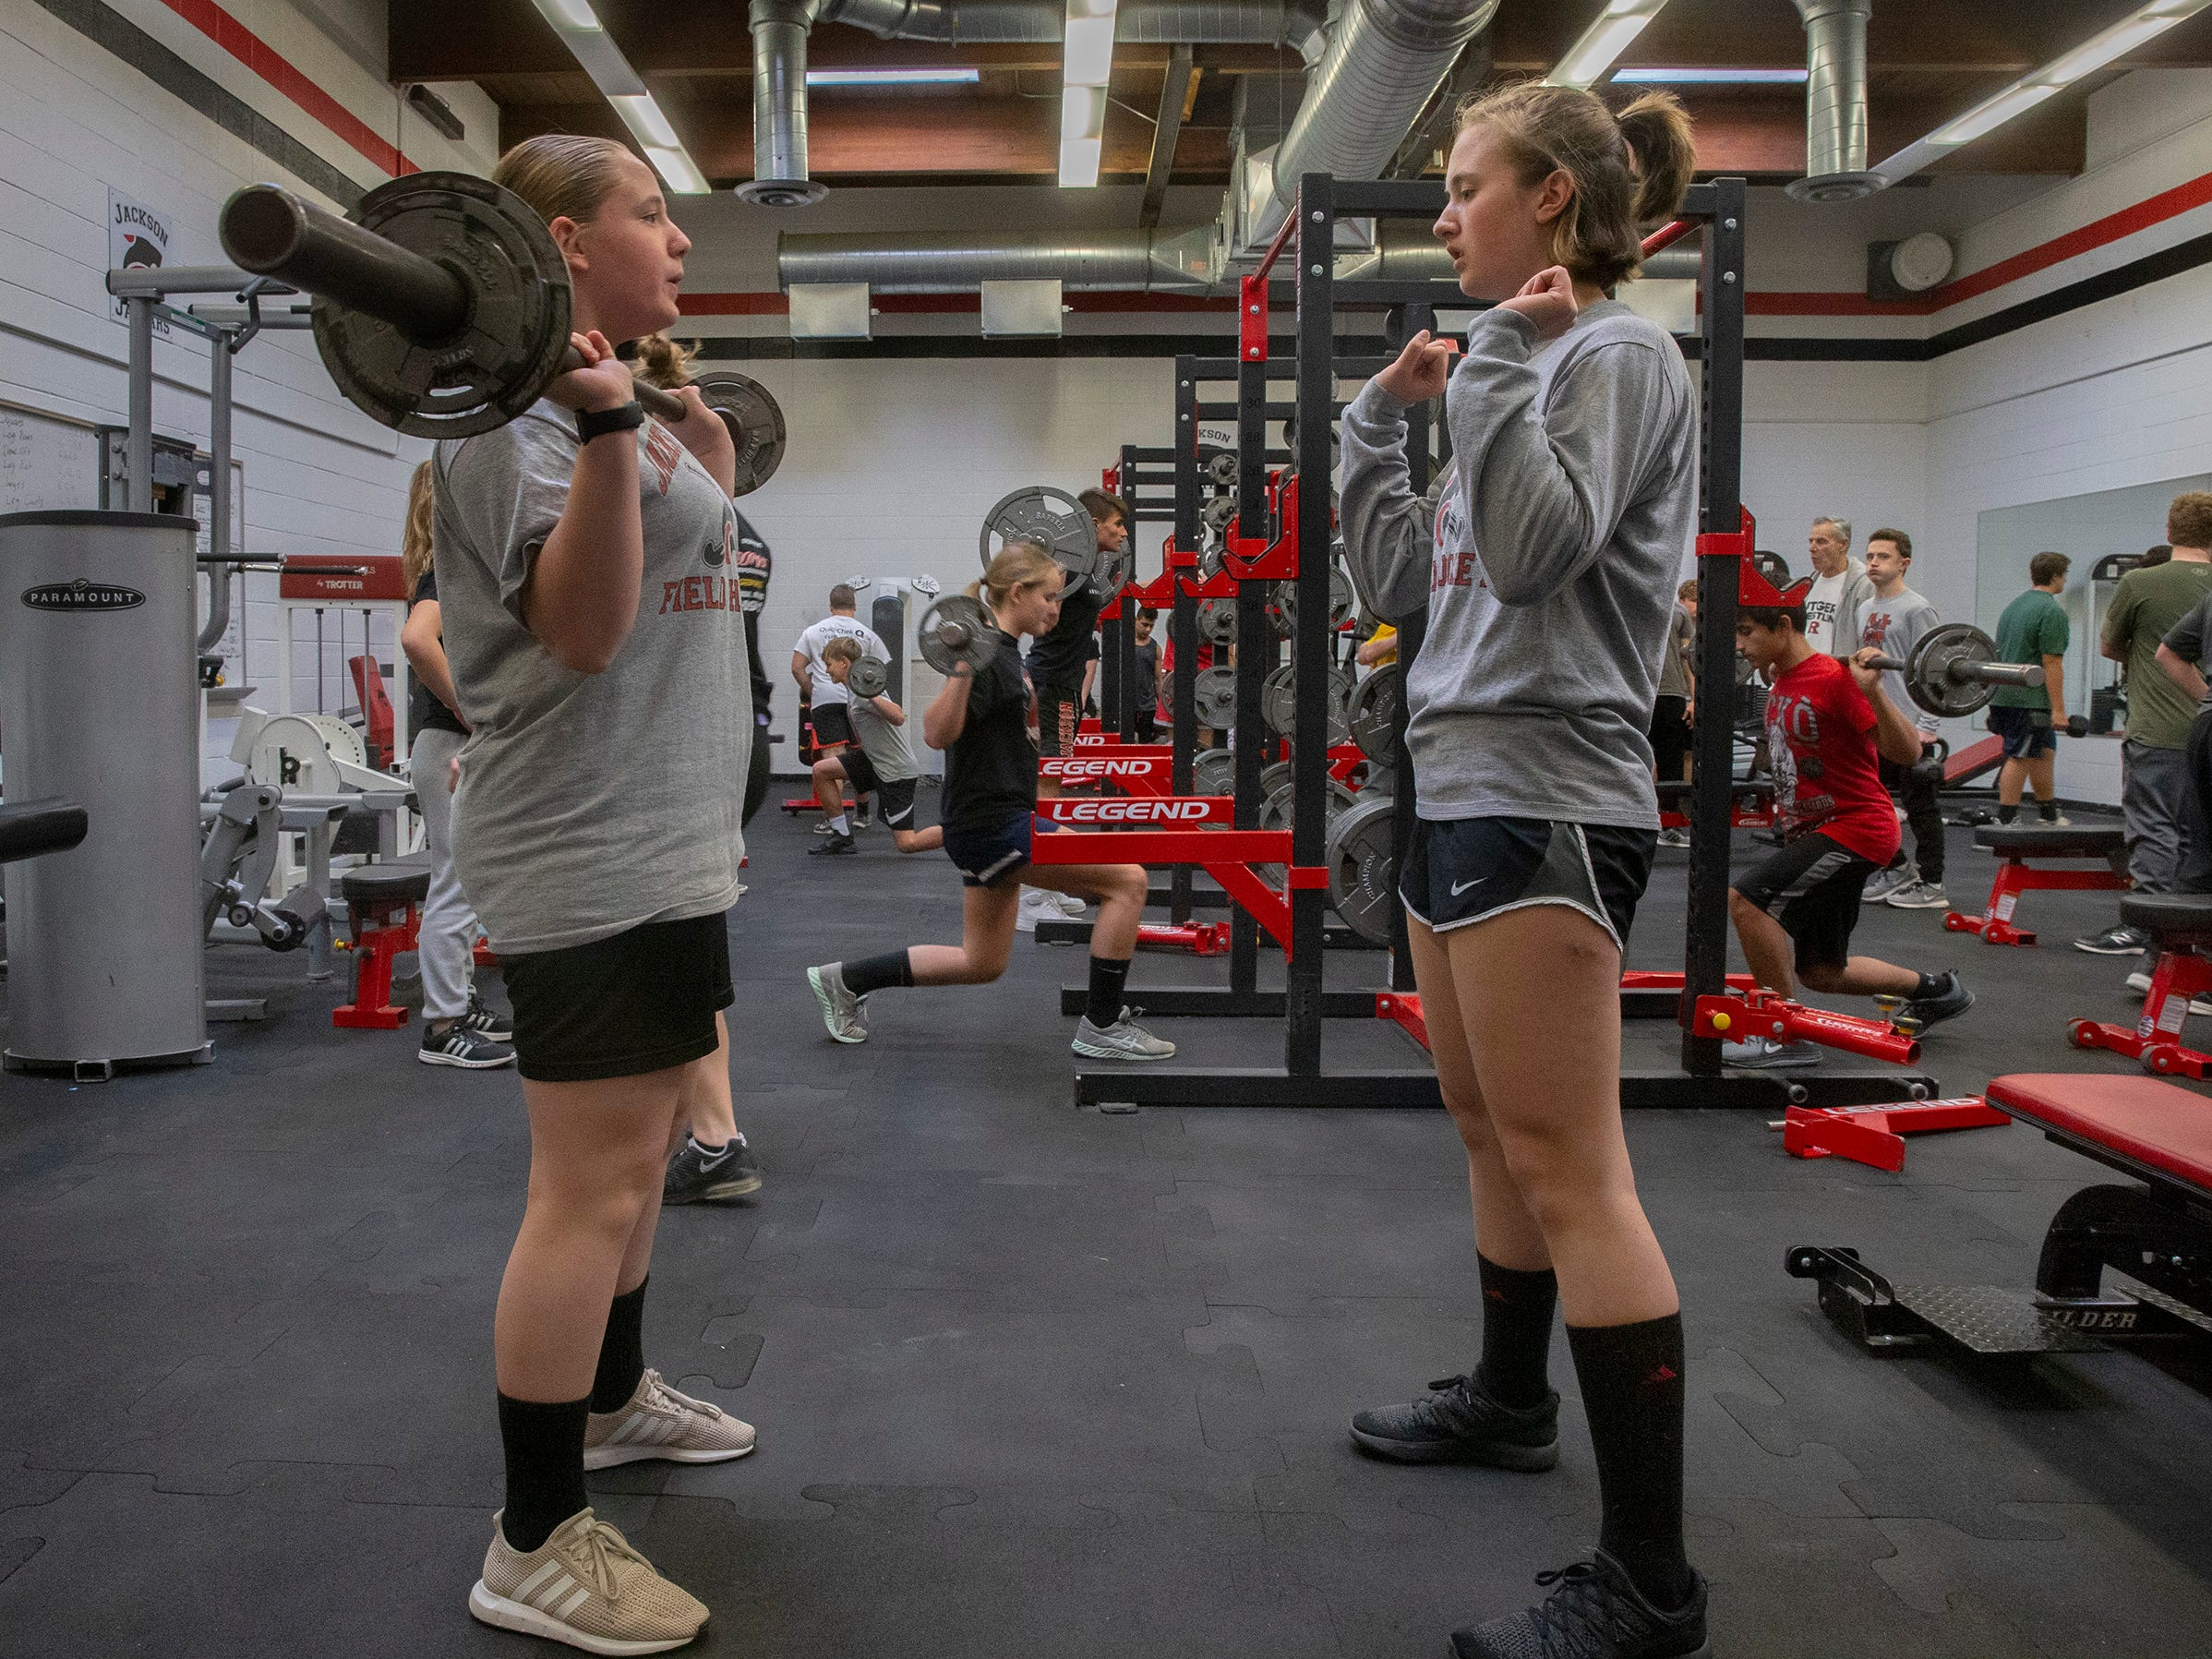 Abby Stanberry (right) gives tips to Jordyn Katz as the wrestlers do some weightlifting prior to wrestling practice. NJSIAA is offering wrestling for girls this year and they will participate in an all girls tournament at the end of the season. Jackson Memorial Wrestling is fielding a full girls team this year. Boy and girls practice together although mostly match up with partners of their own sex for most drills.